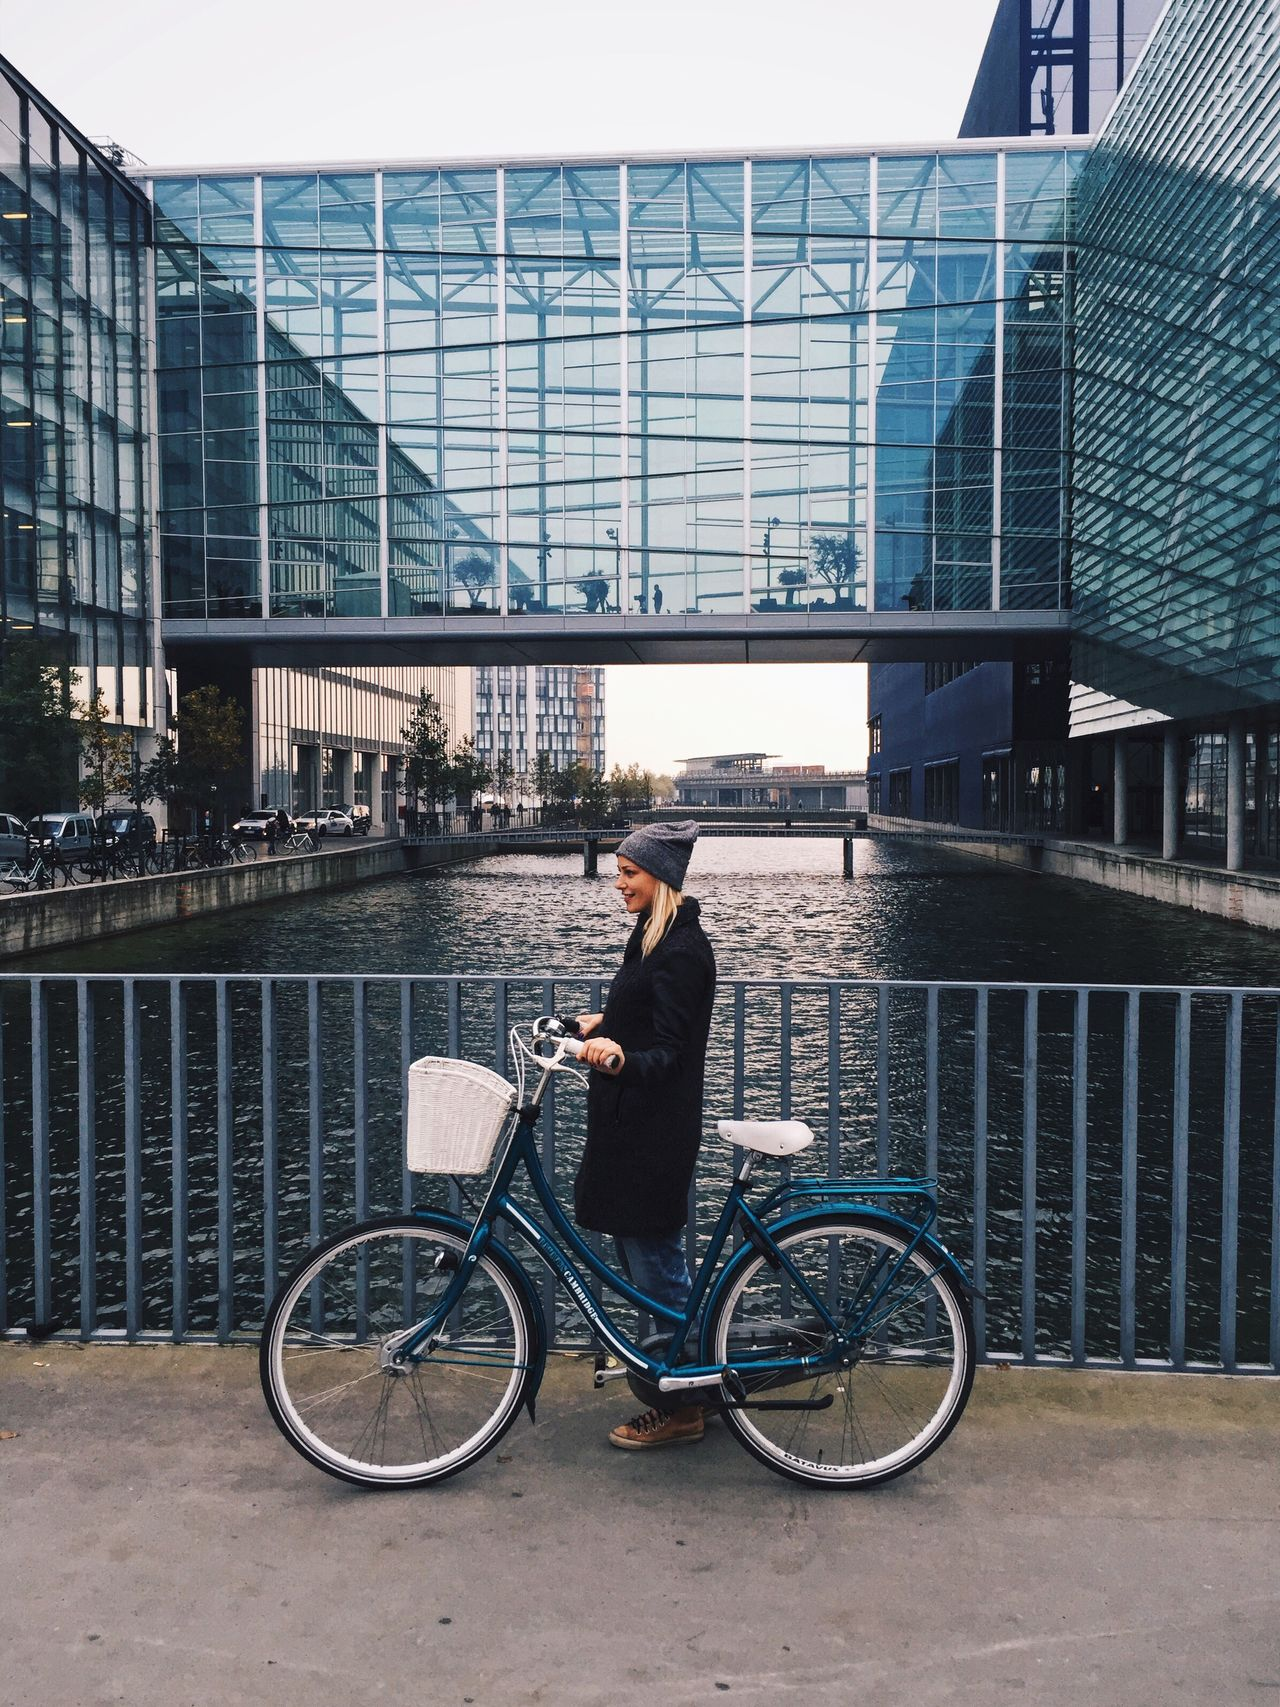 Bicycle Transportation Architecture Built Structure Building Exterior Mode Of Transport Railing City Cycling One Person Day Full Length Adults Only Outdoors Standing Adult Real People Only Men People Sky